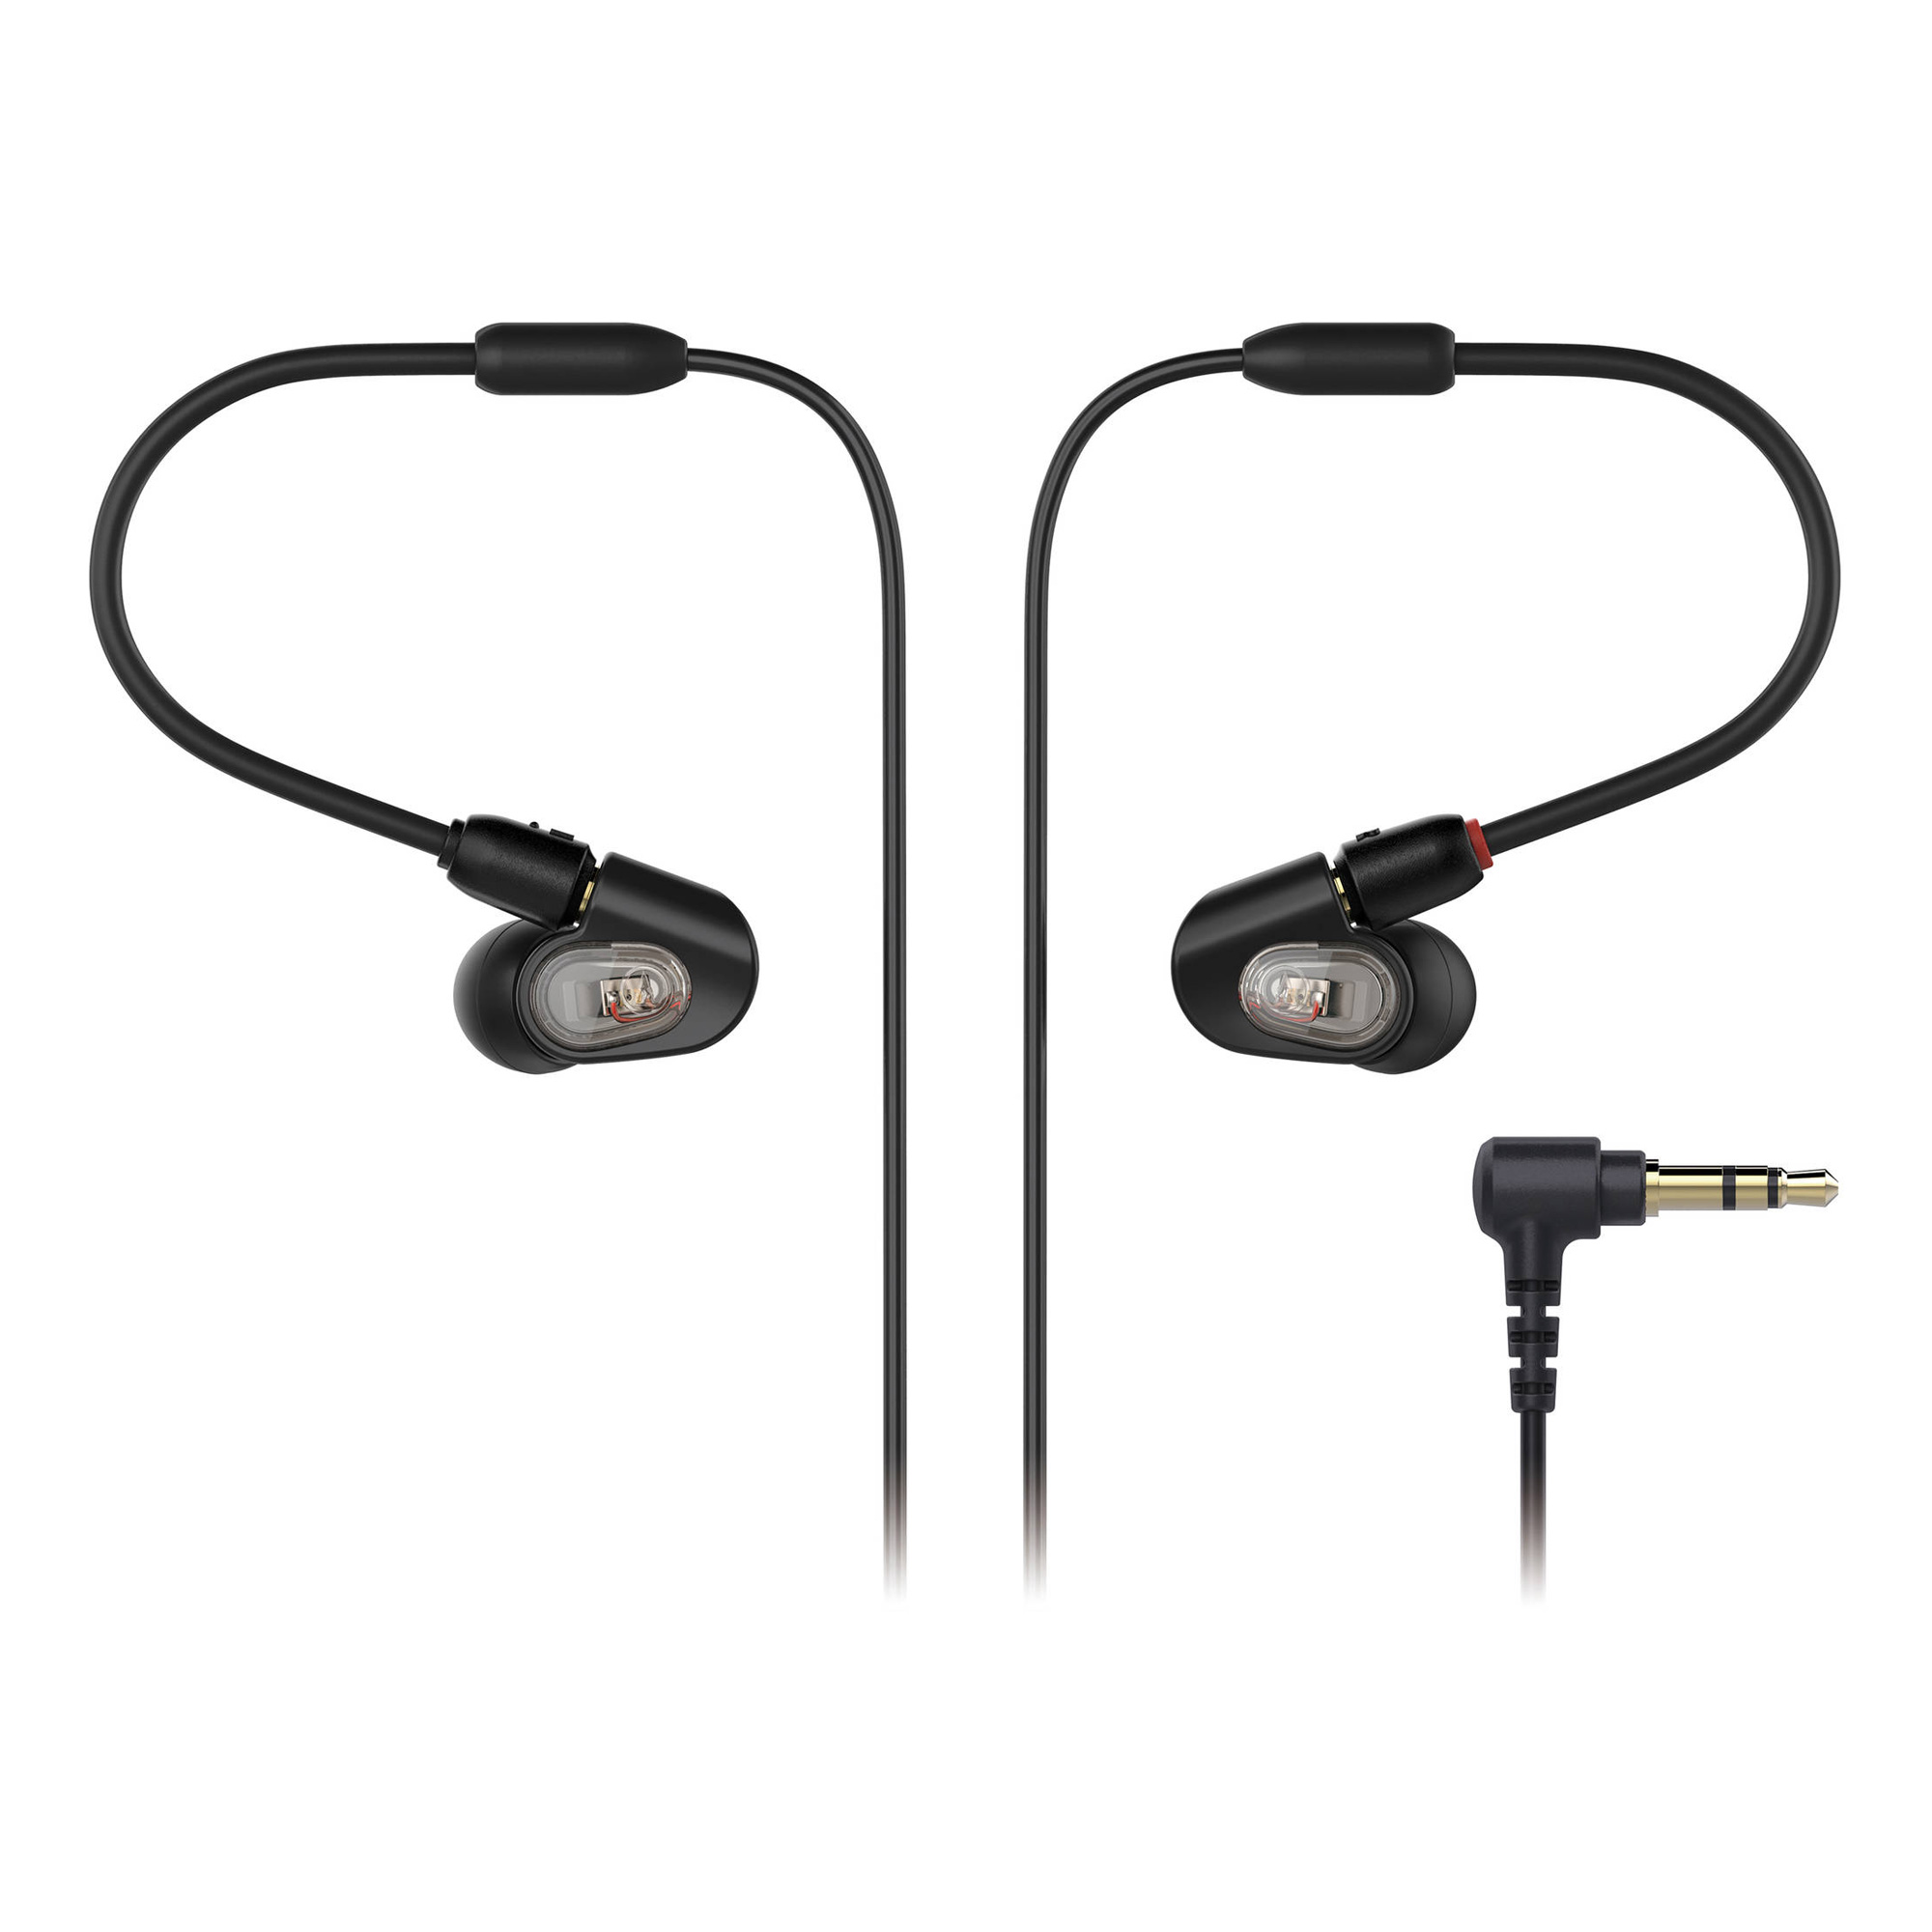 Professional In-Ear Monitor Headphones E50